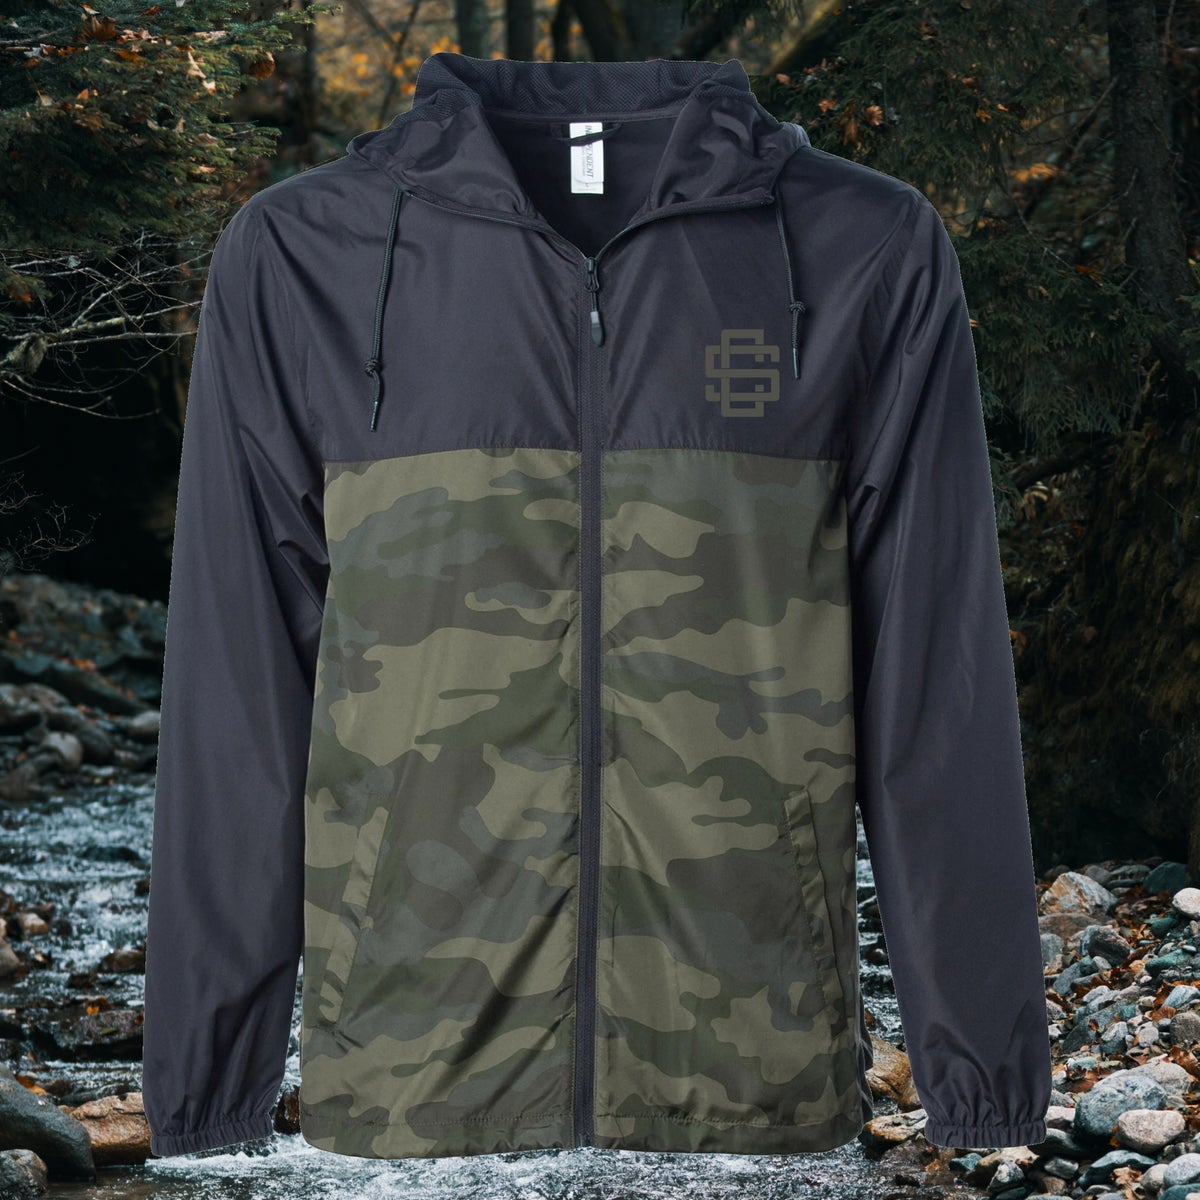 SC Monogram - Lightweight Windbreaker